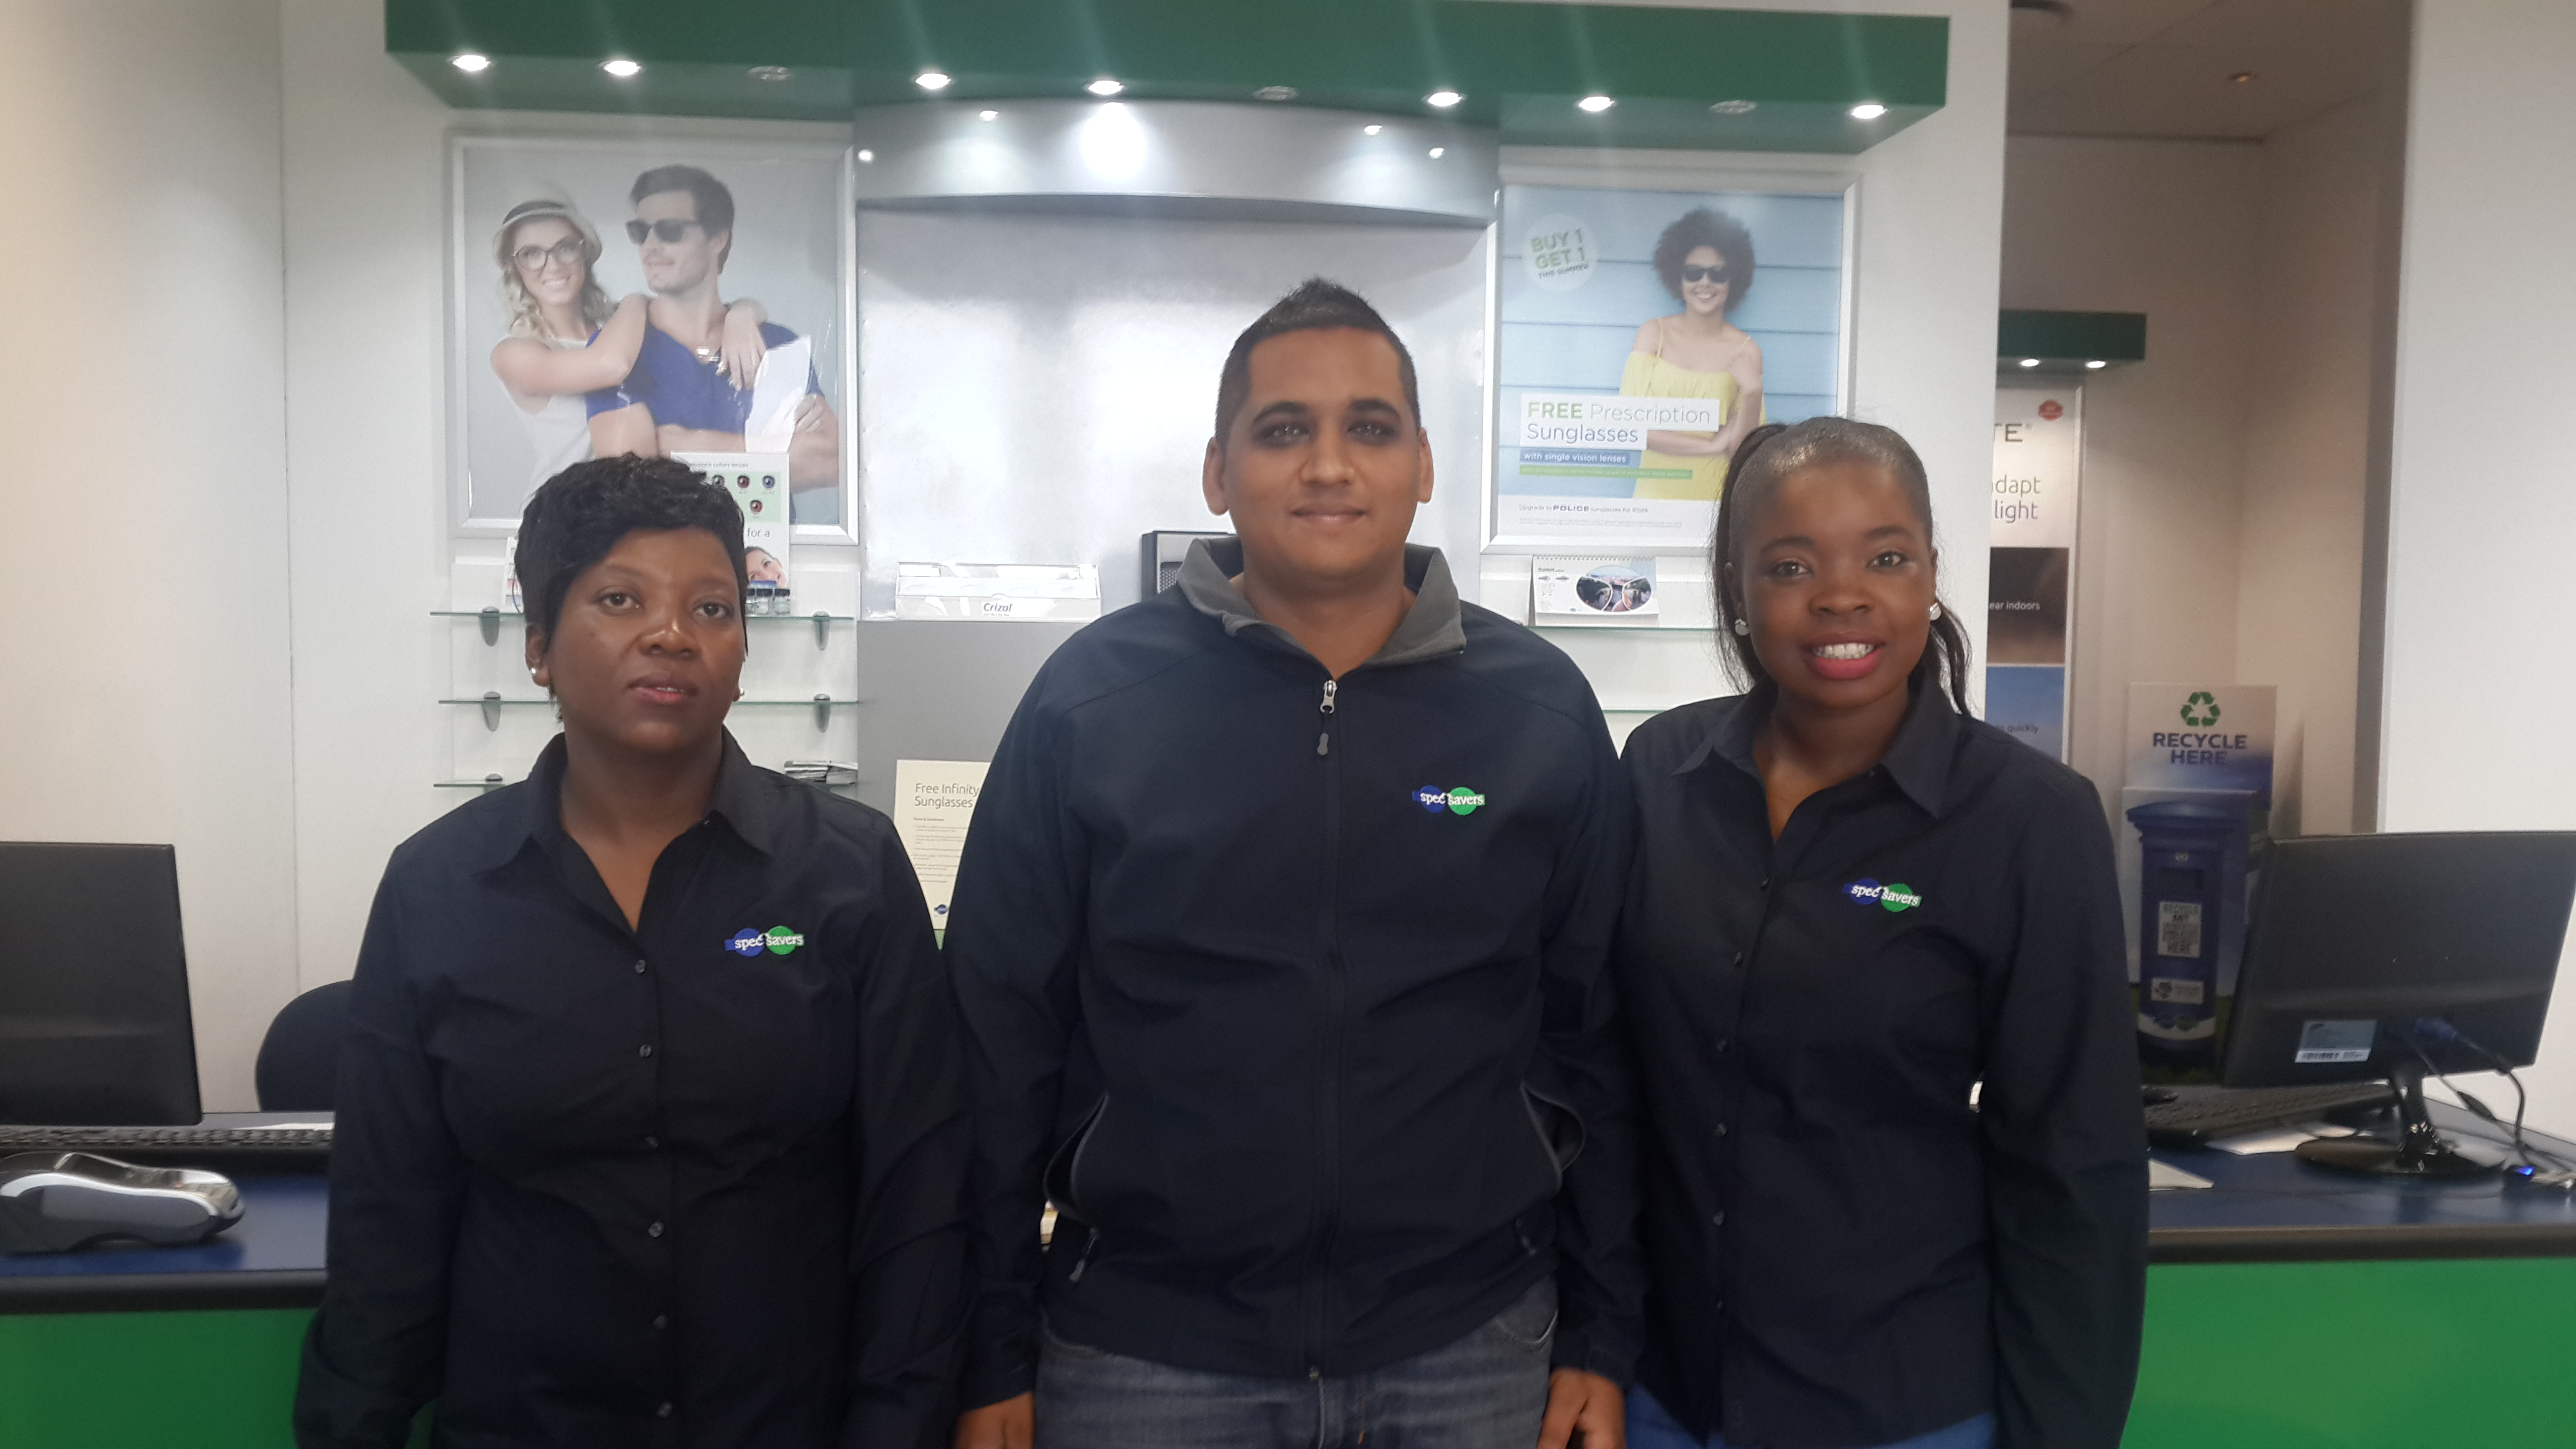 Optometrist Deeshan Rampathy with Nombulelo Mtwazi (left) and Cute Siweya (right)